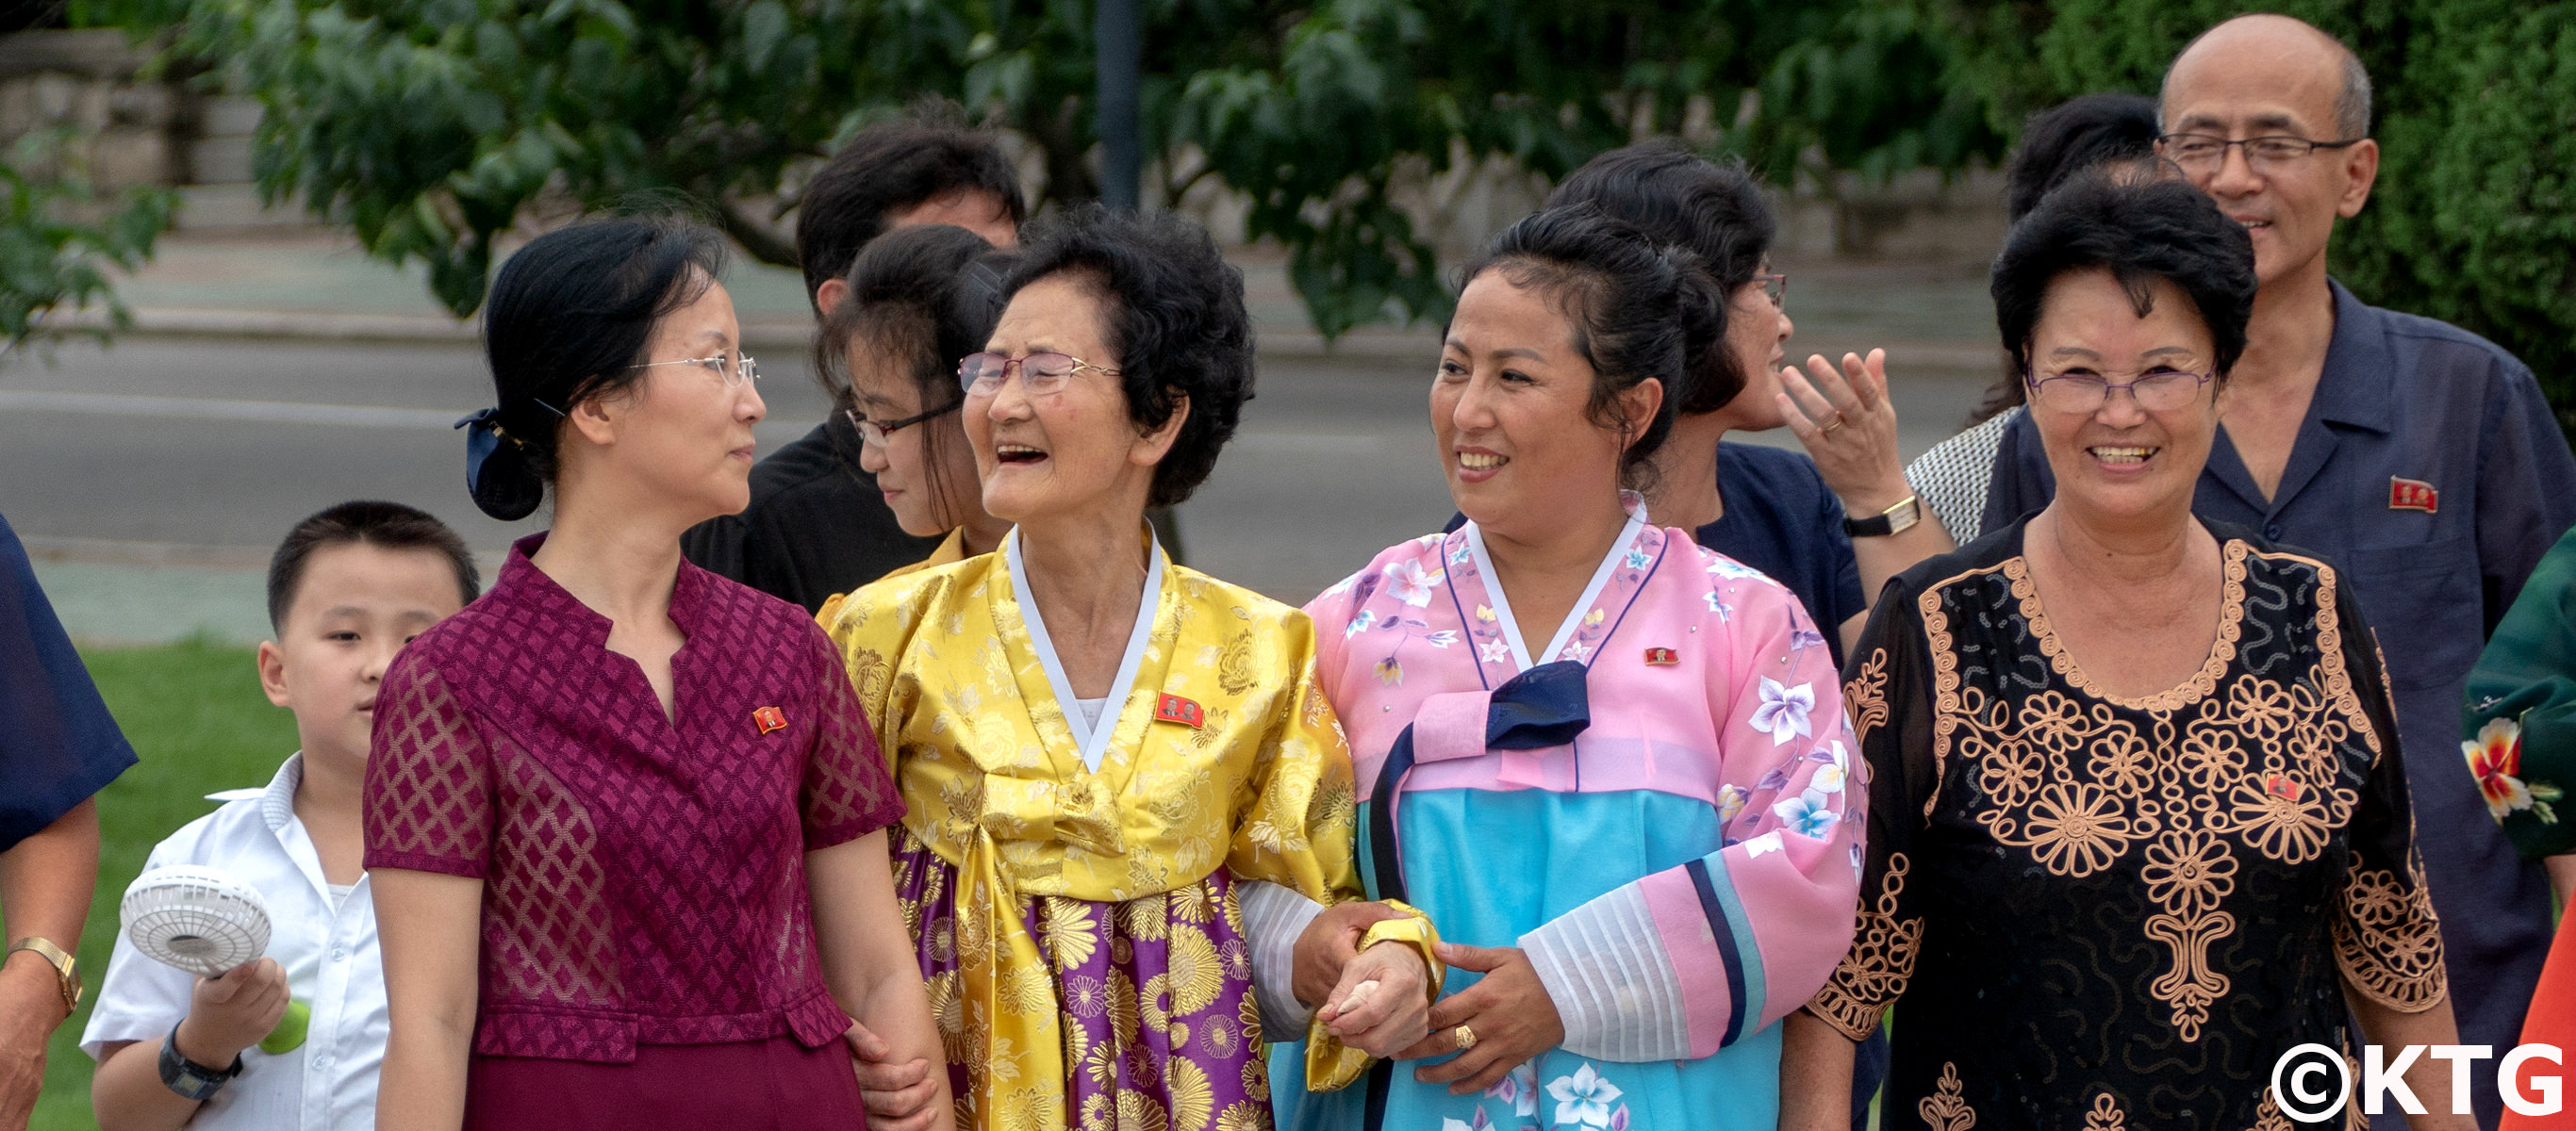 North Korean family in Pyongyang. Trip arranged by KTG Tours